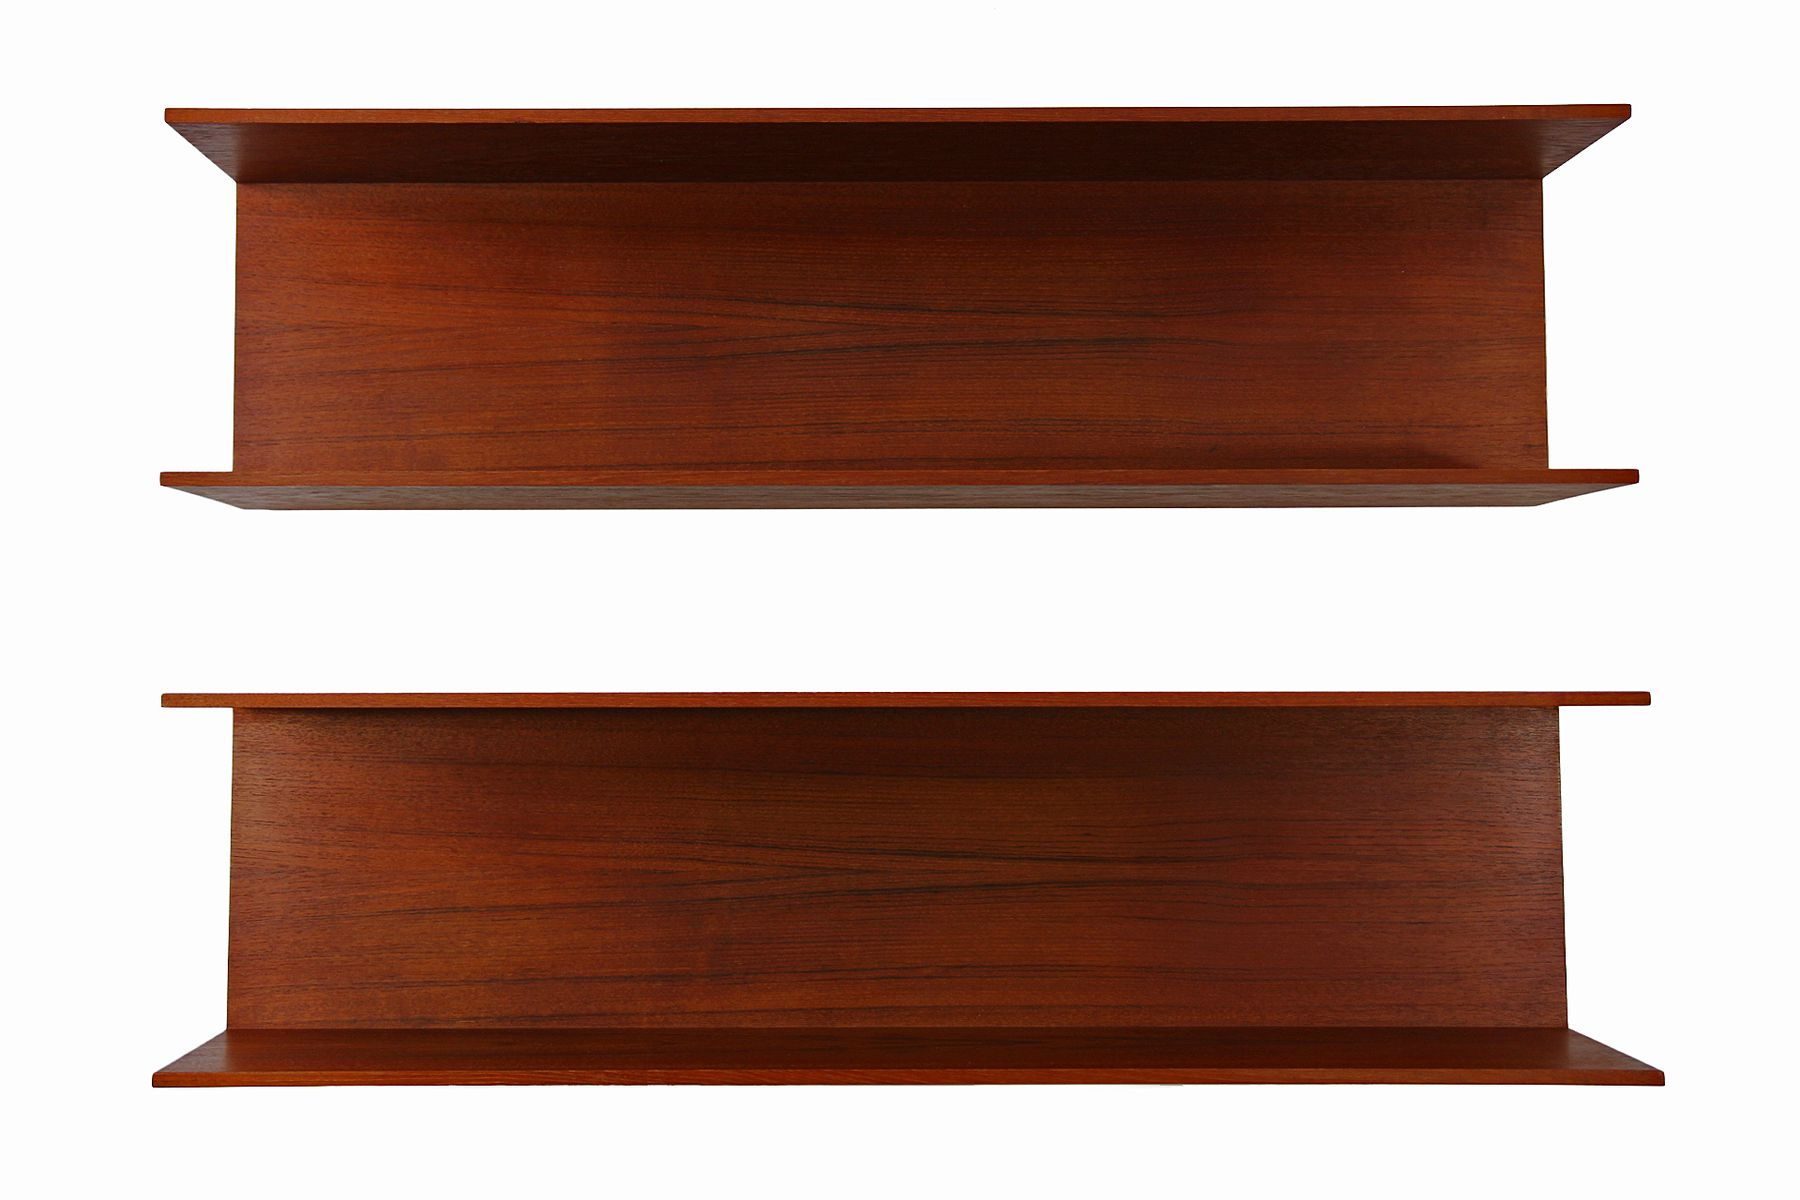 wall shelves by walter wirz for wilhelm renz set of 2 for. Black Bedroom Furniture Sets. Home Design Ideas